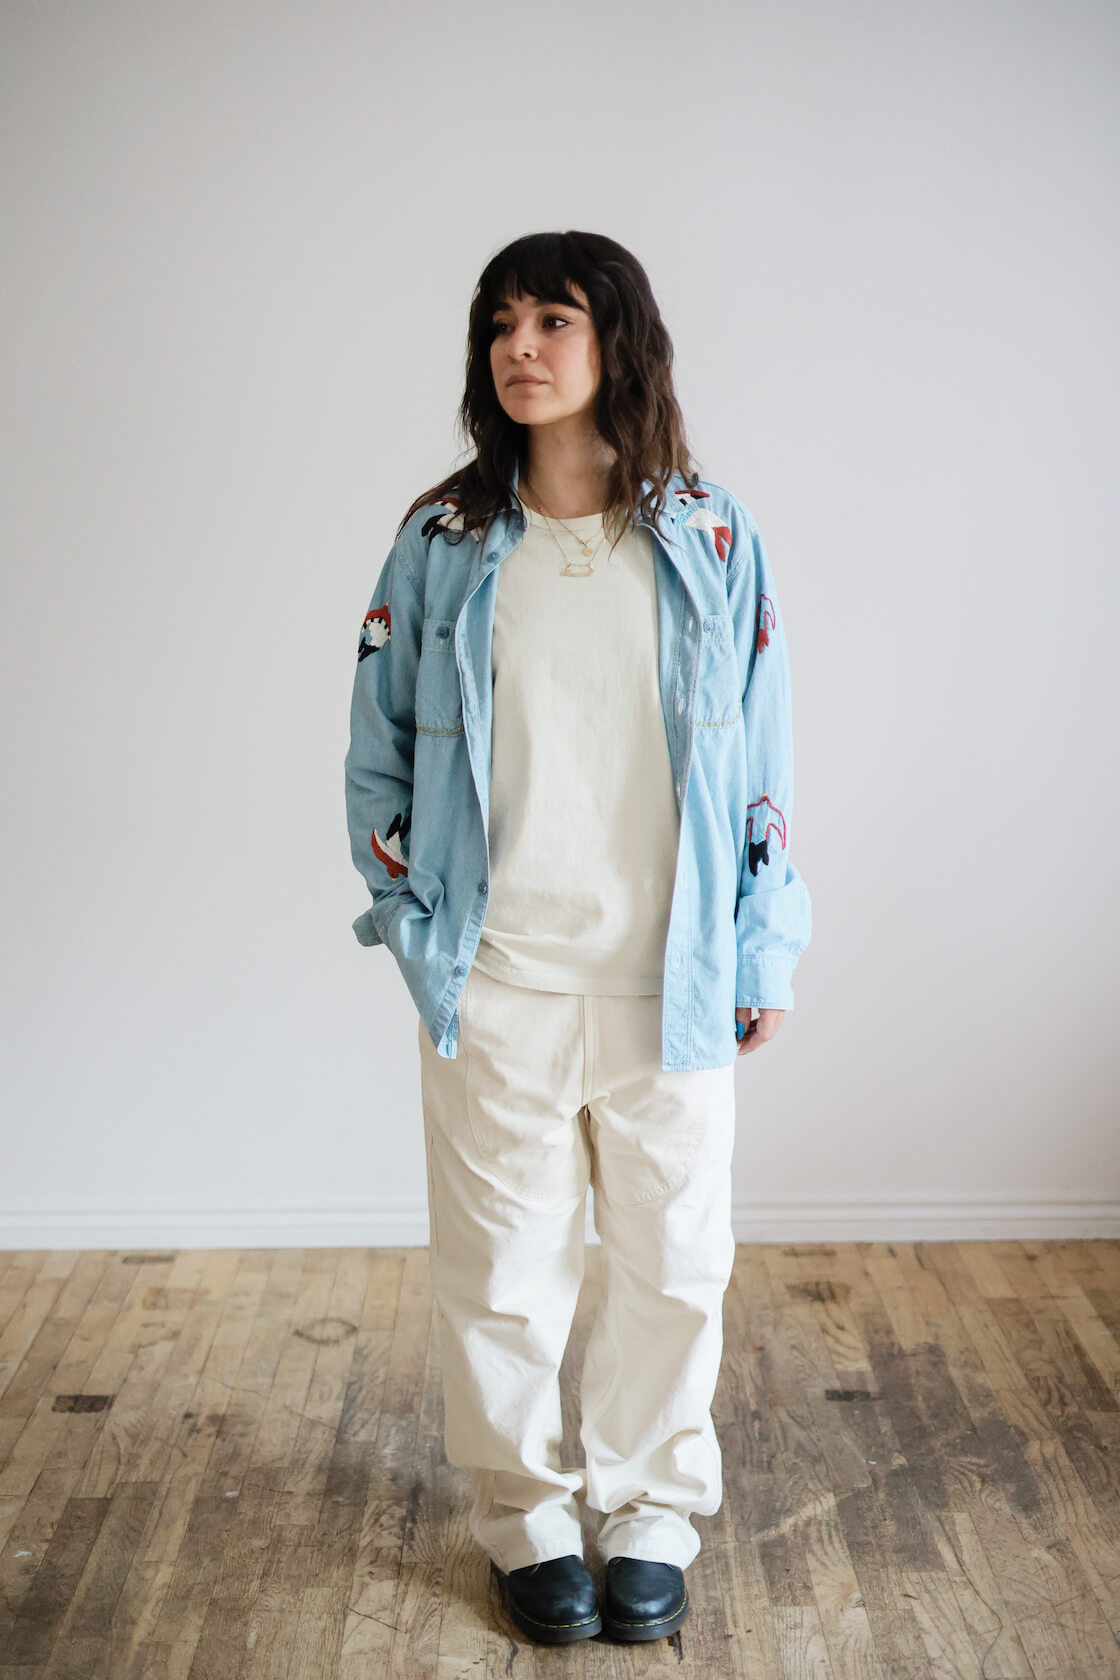 kapital light canvas welder overalls and embroidered chambray shirt on body